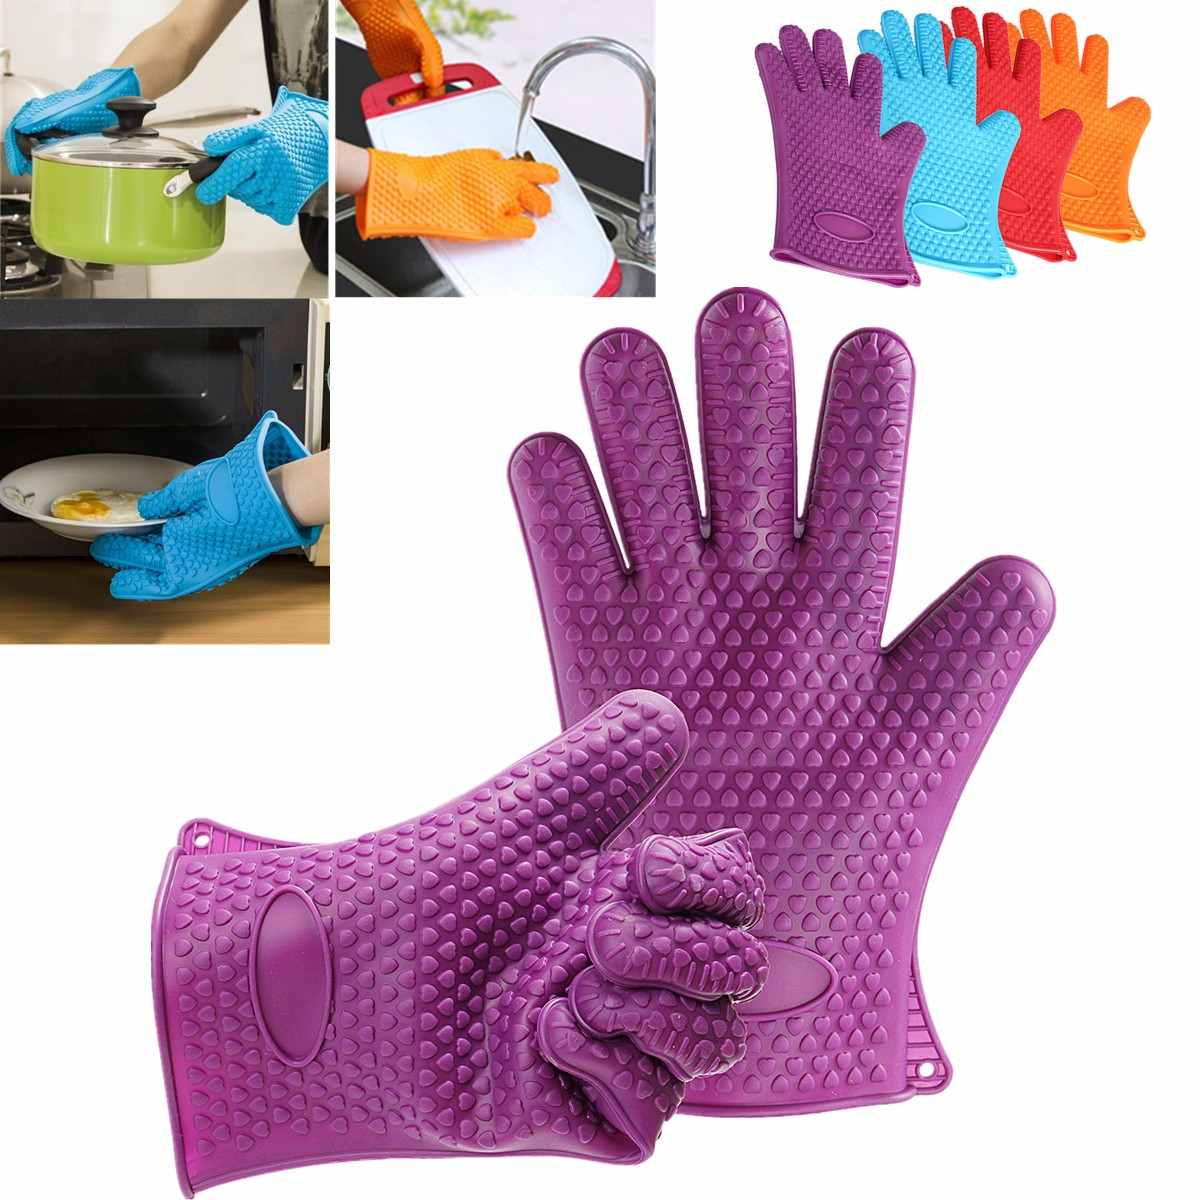 1 Pair food grade Heat Resistant Silicone Kitchen barbecue oven glove Cooking BBQ Grill Glove Oven Mitt Baking Protective gloves семена баклажан снежный 0 3 г page 9